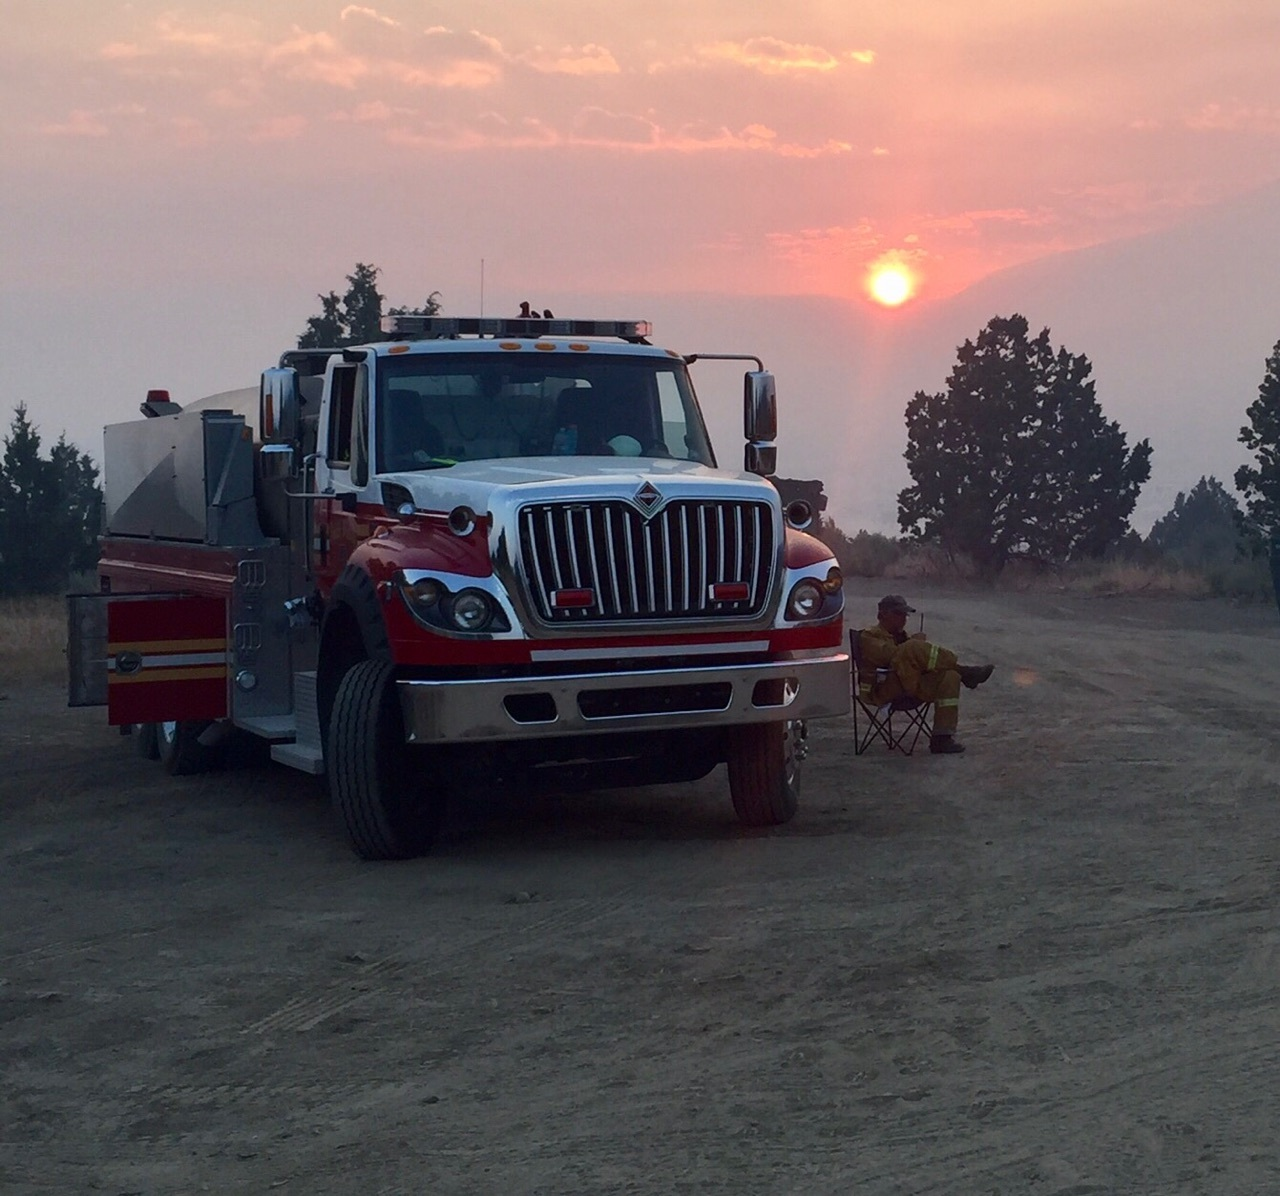 Brush 40 and crew providing mutual aid to East Fork Fire